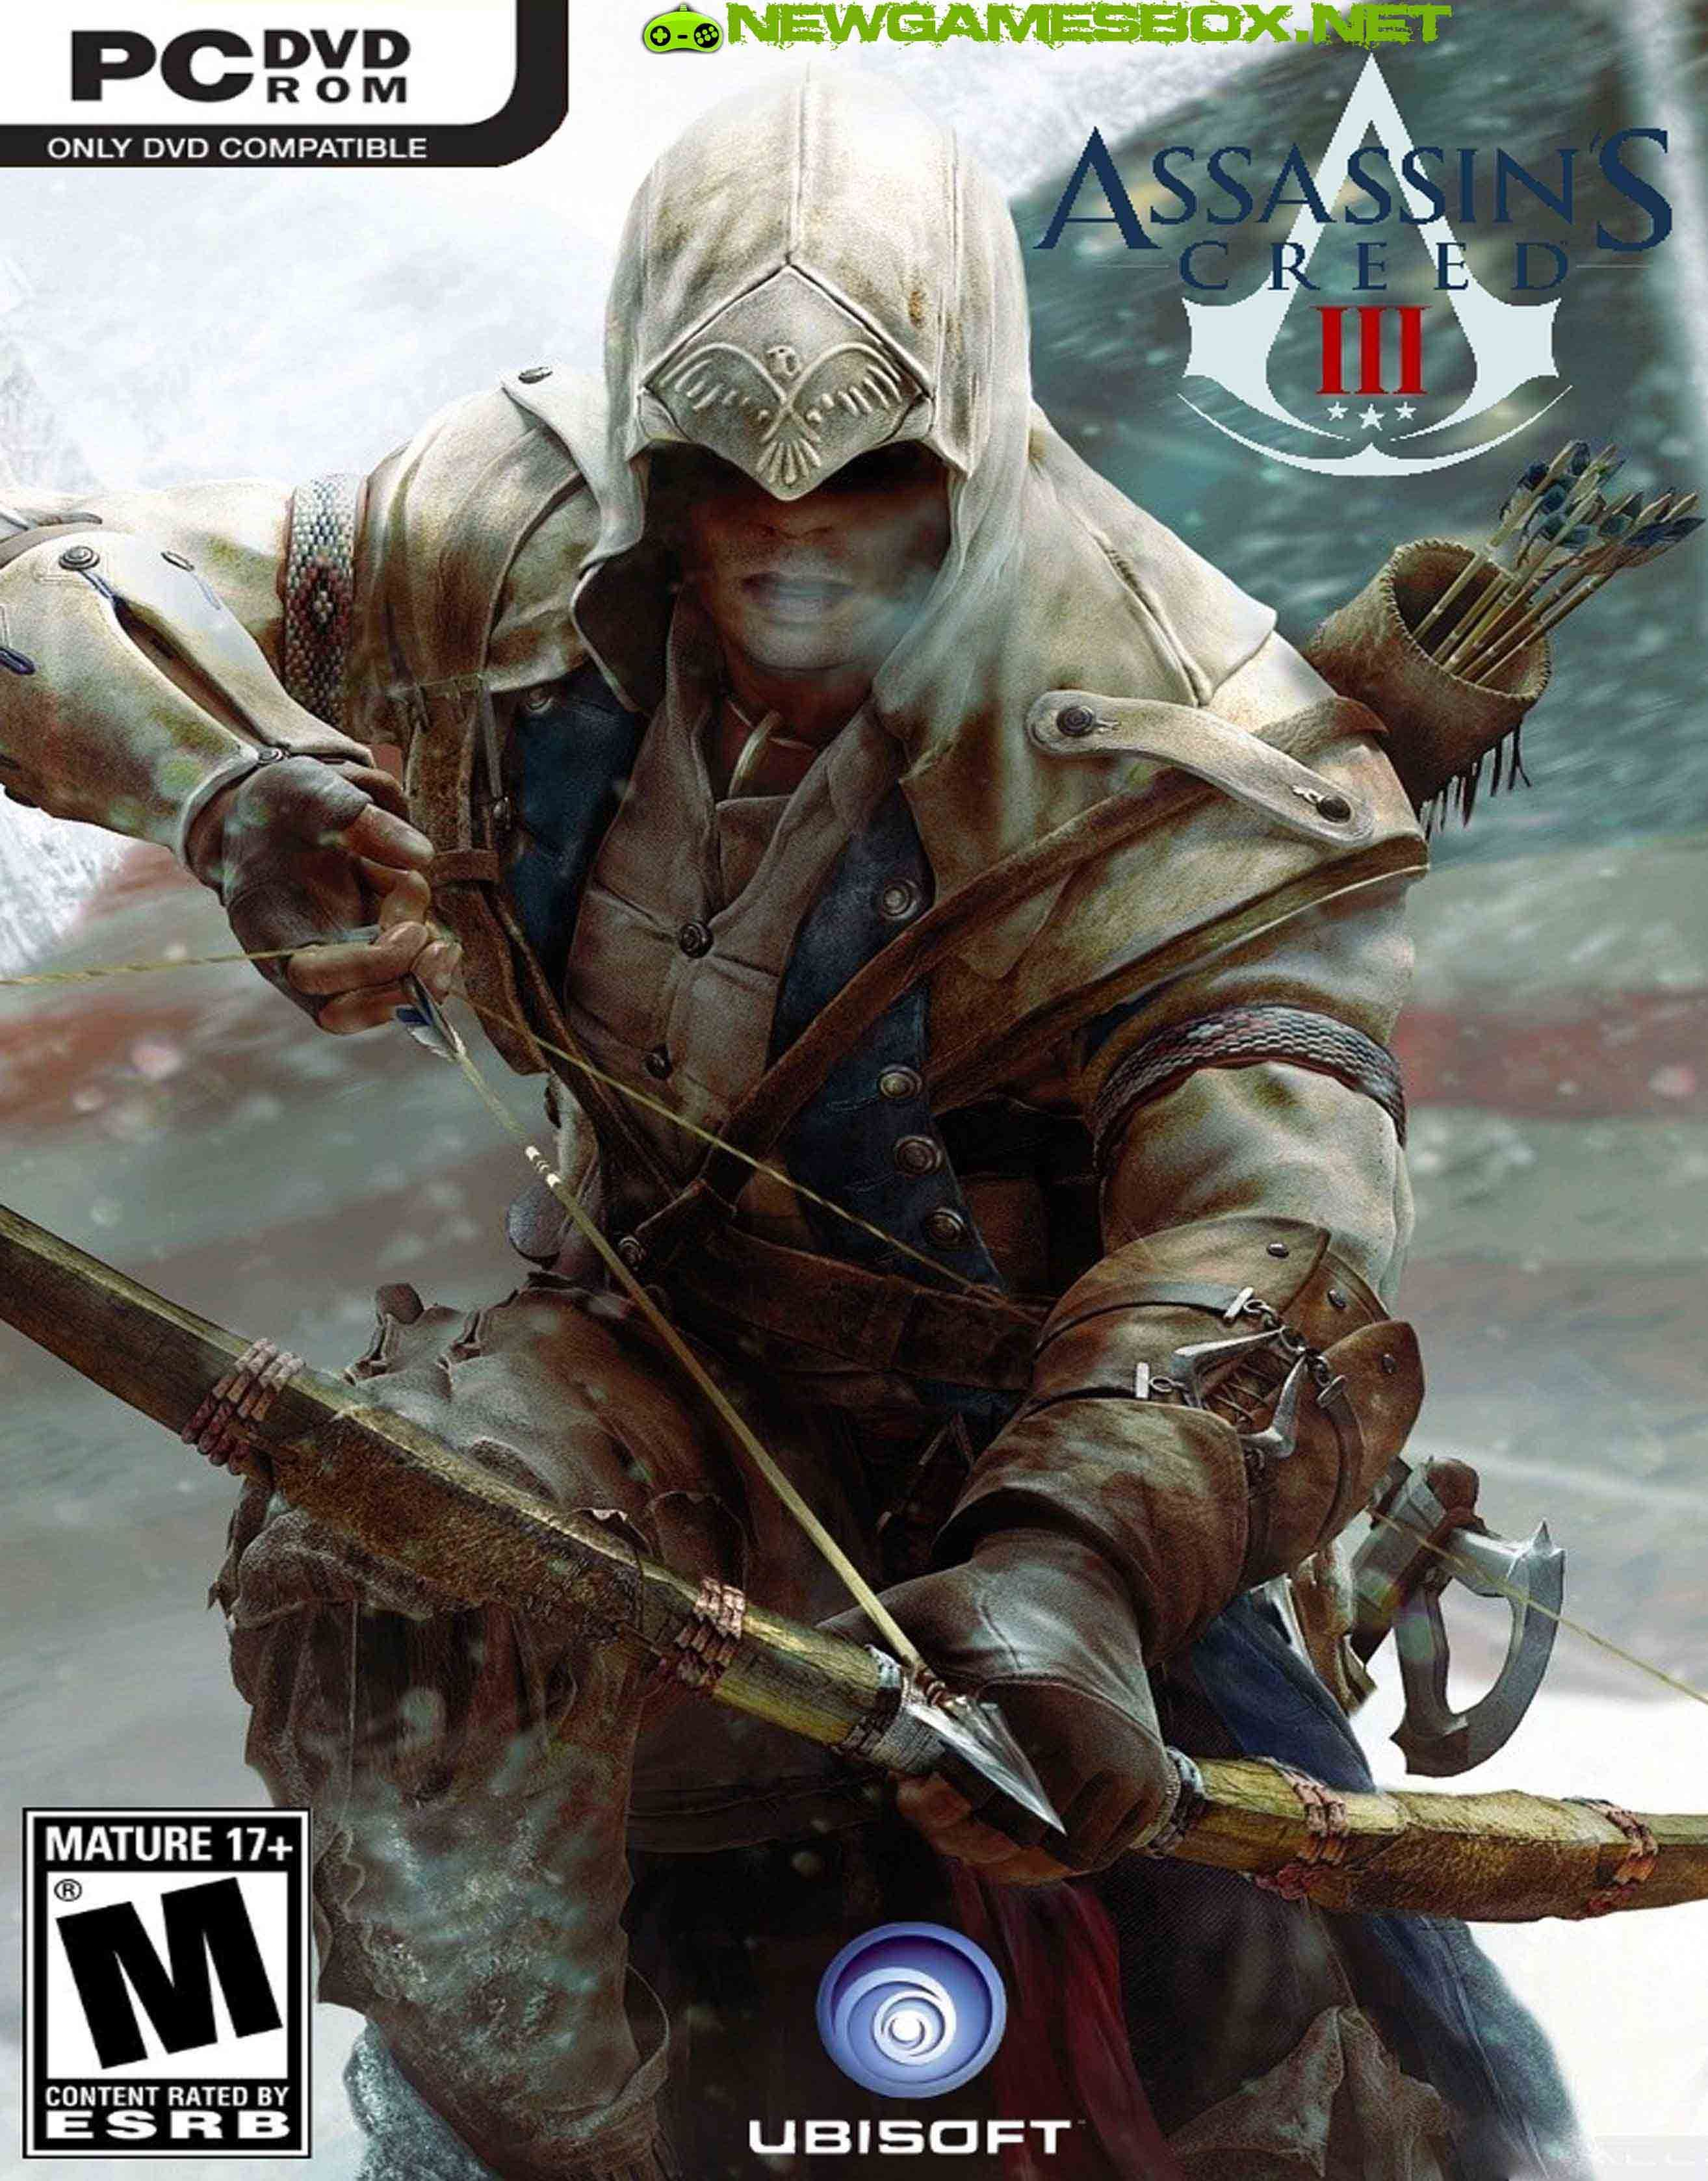 assassins creed 3 free download full version pc